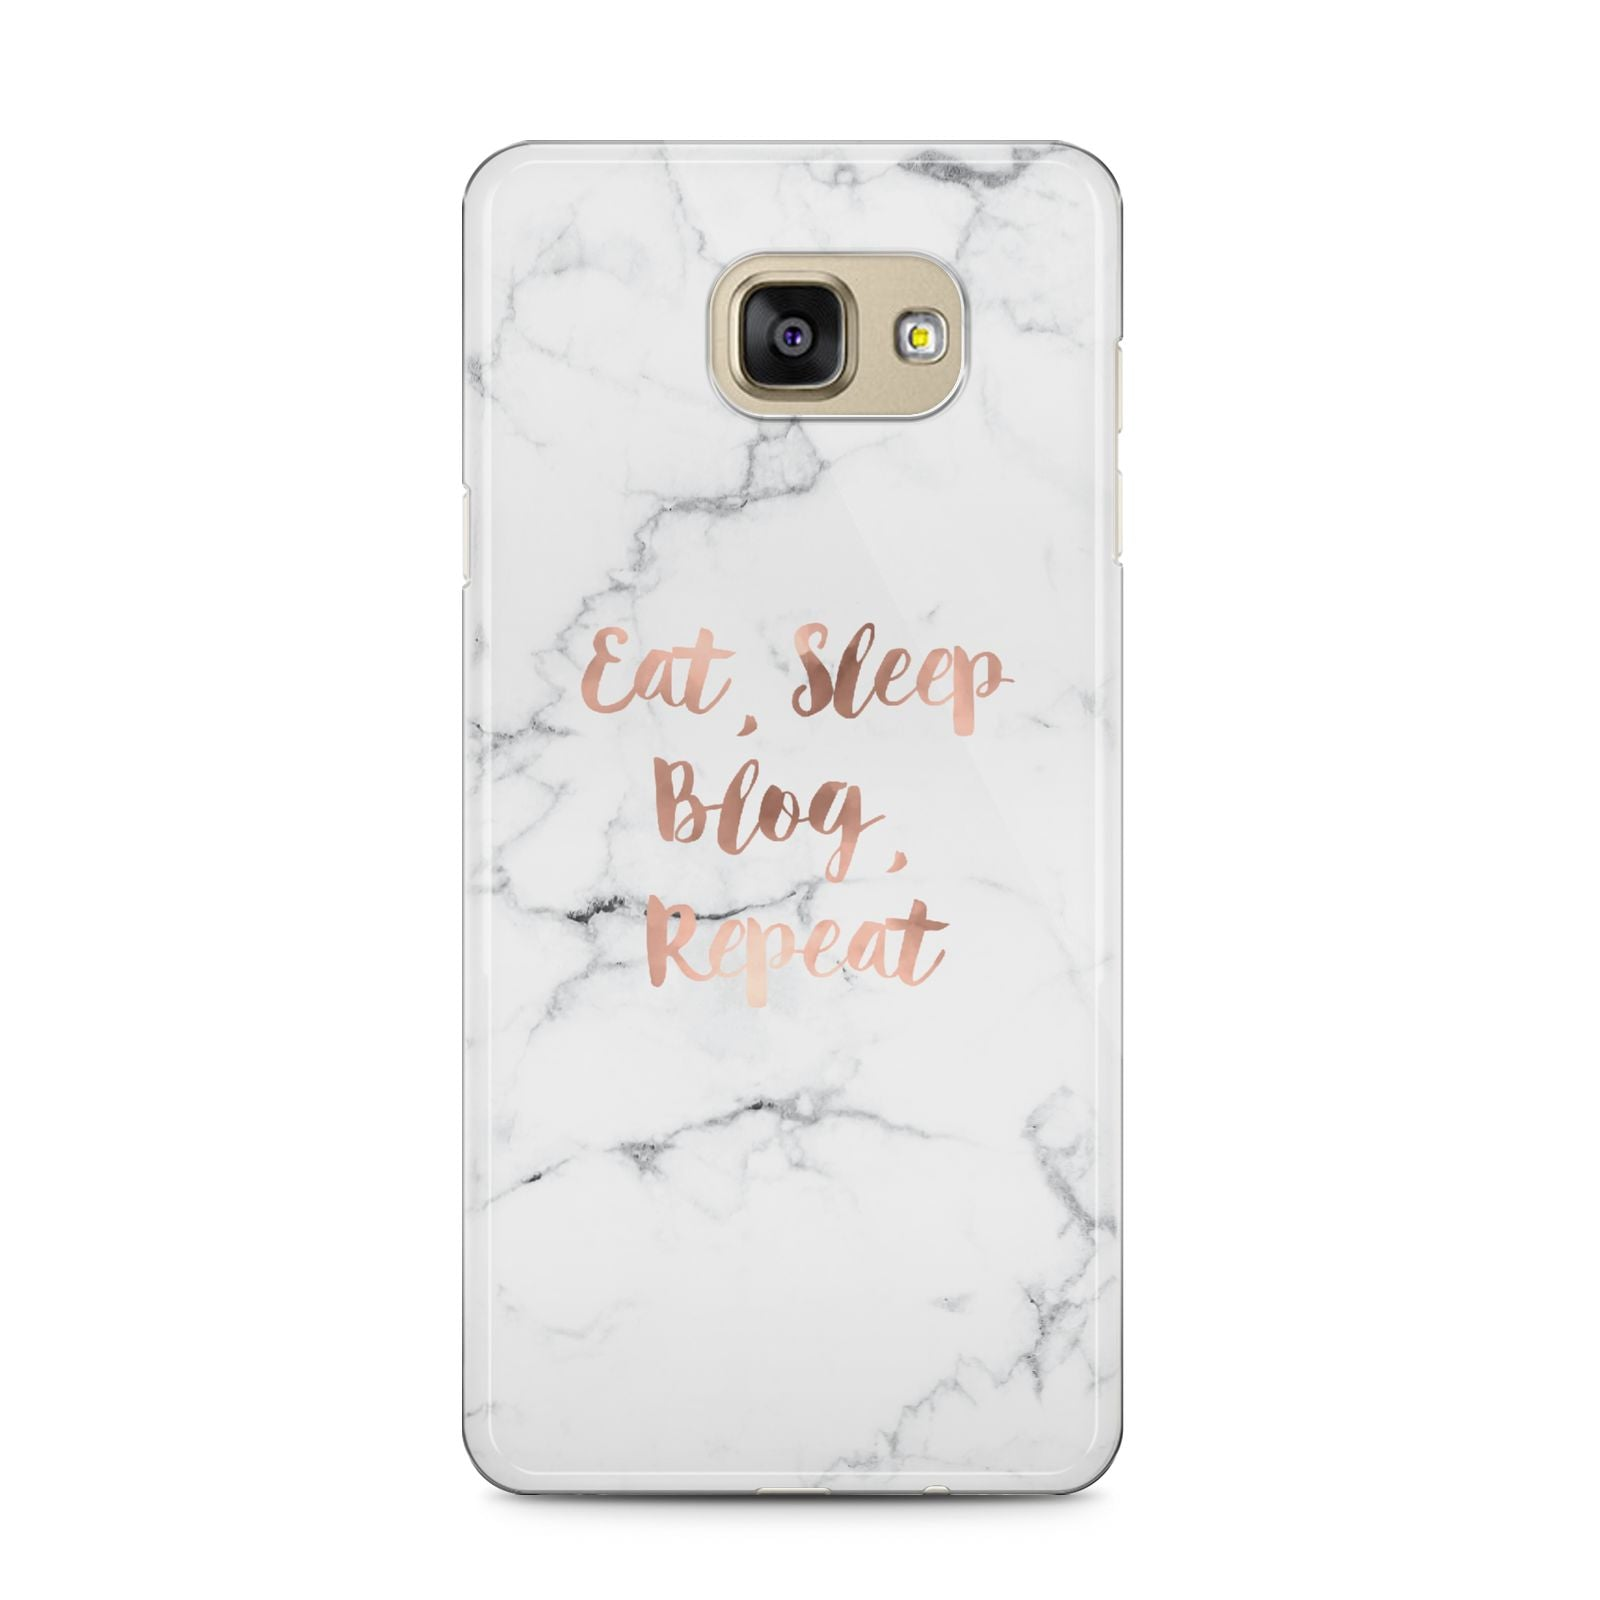 Eat Sleep Blog Repeat Marble Effect Samsung Galaxy A5 2016 Case on gold phone